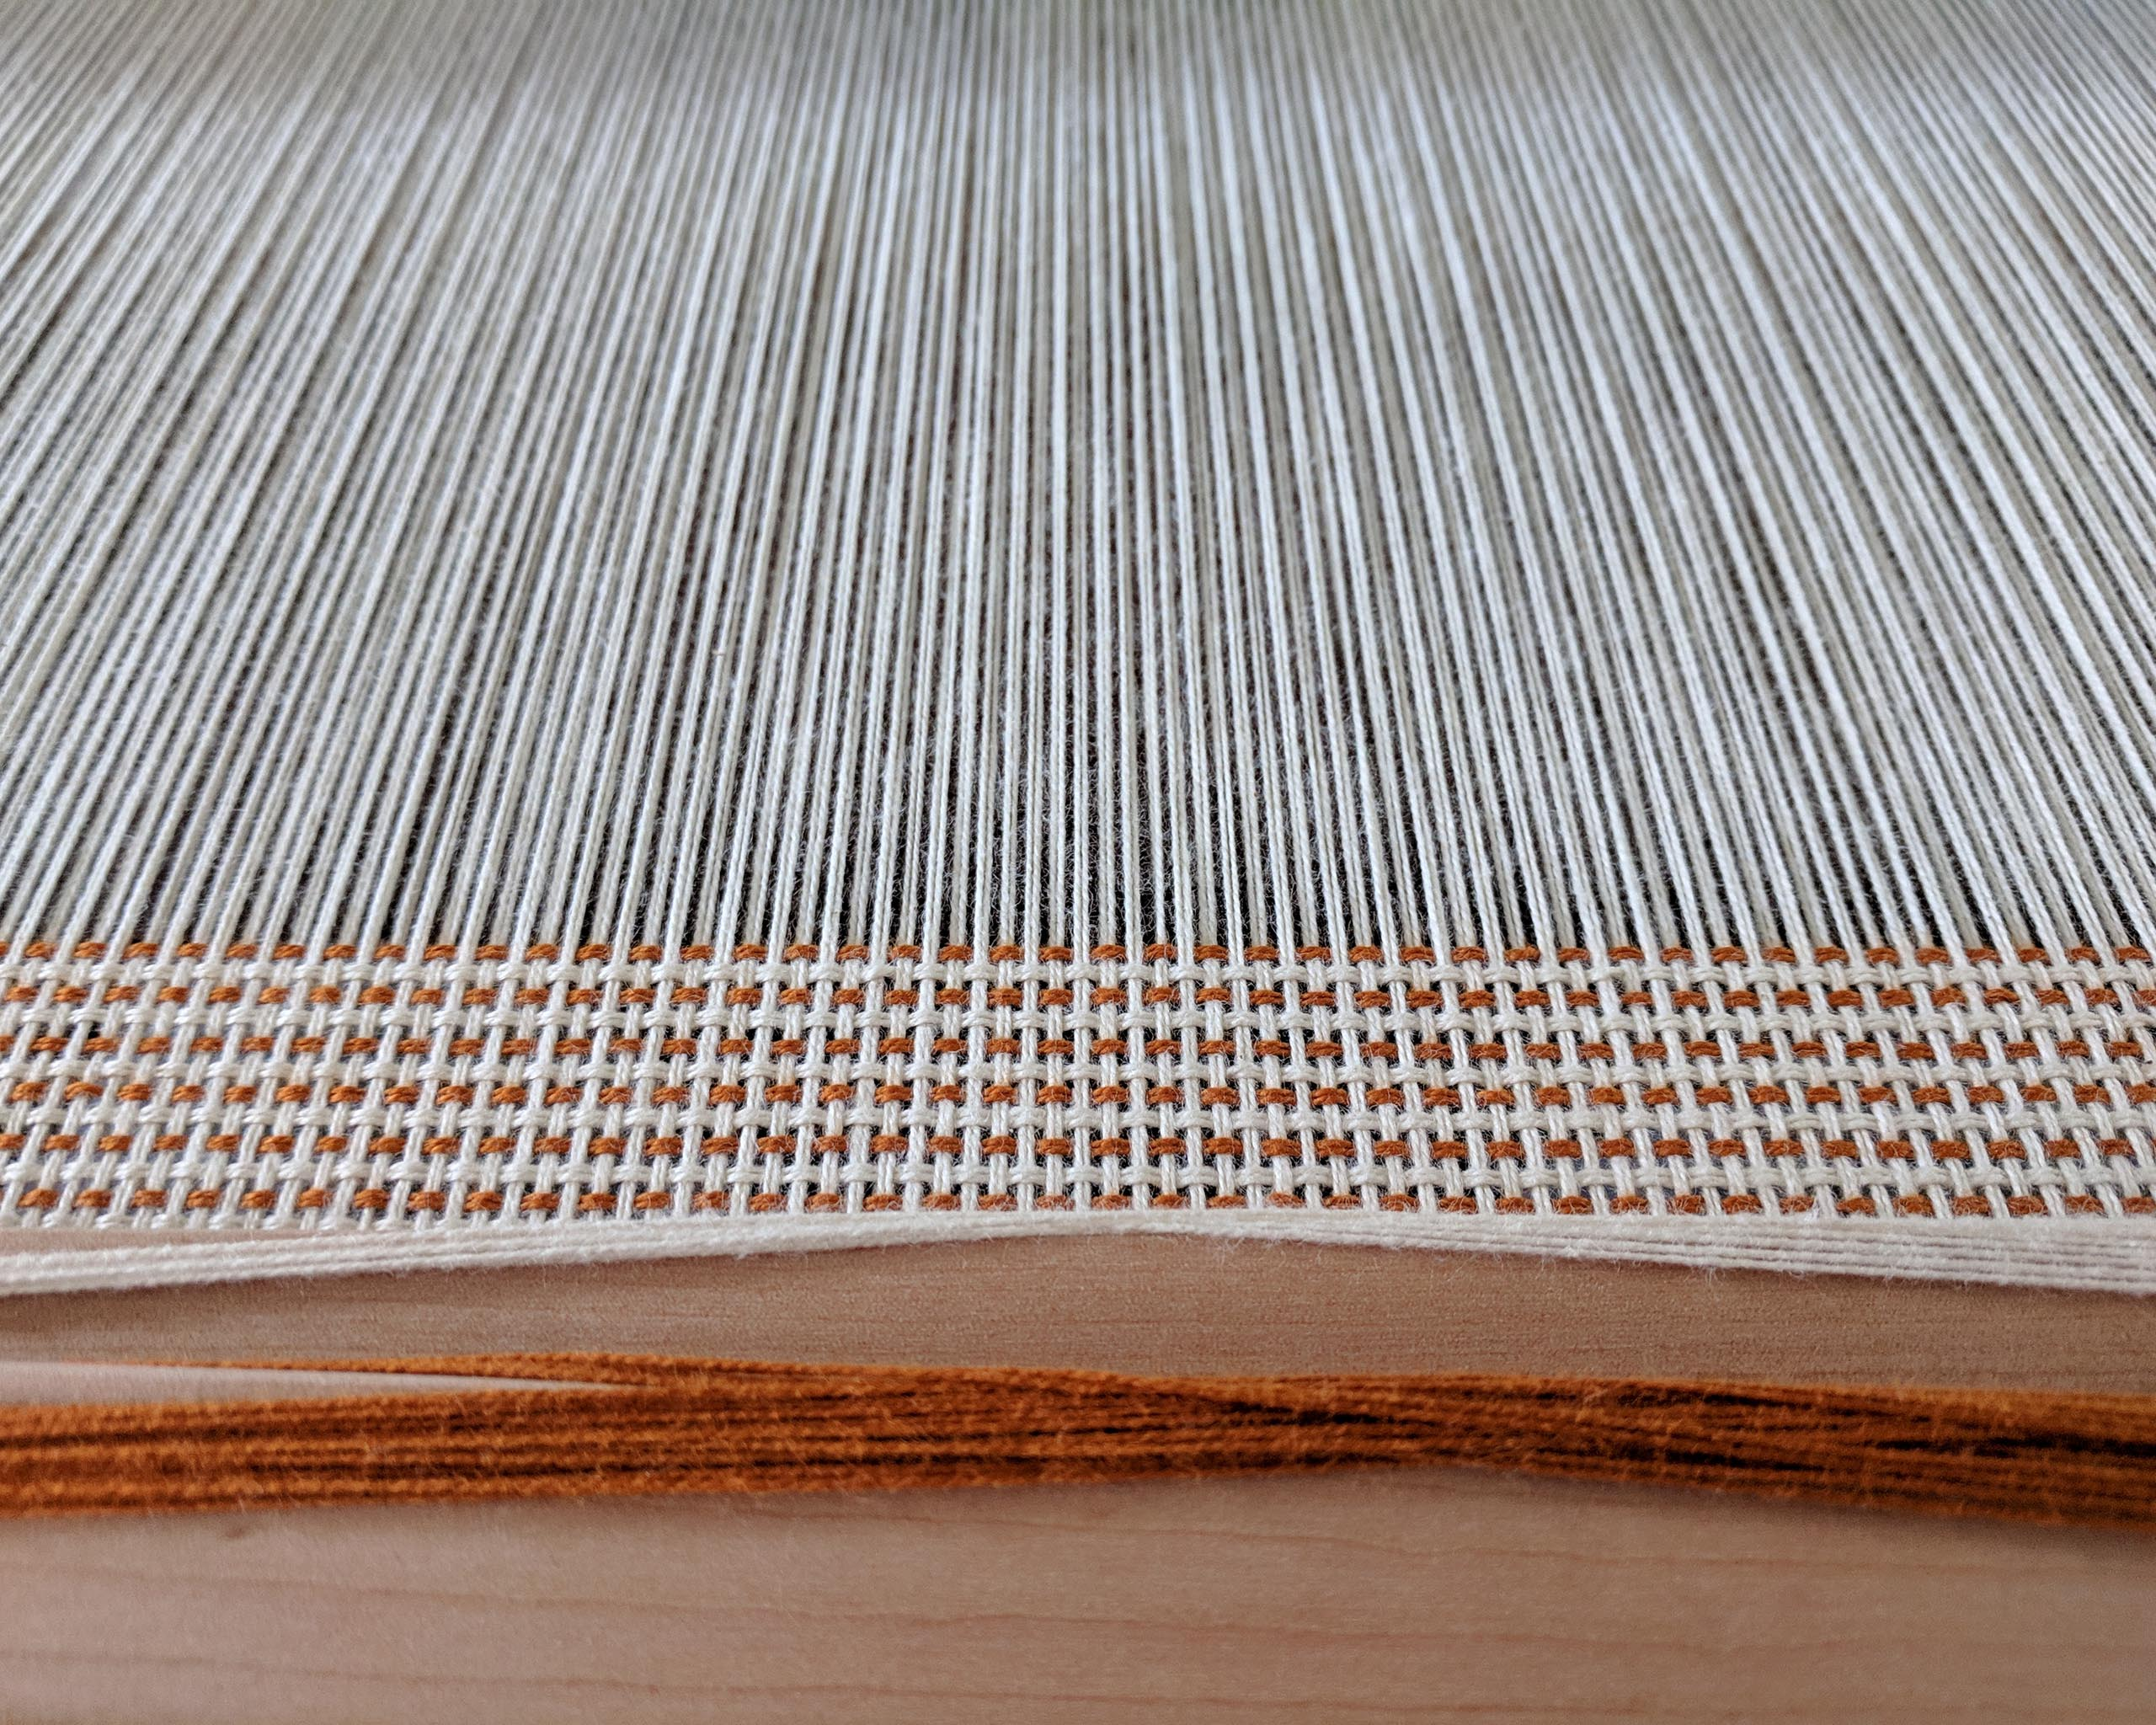 Beginner Rigid Heddle Skyline Tea Towels